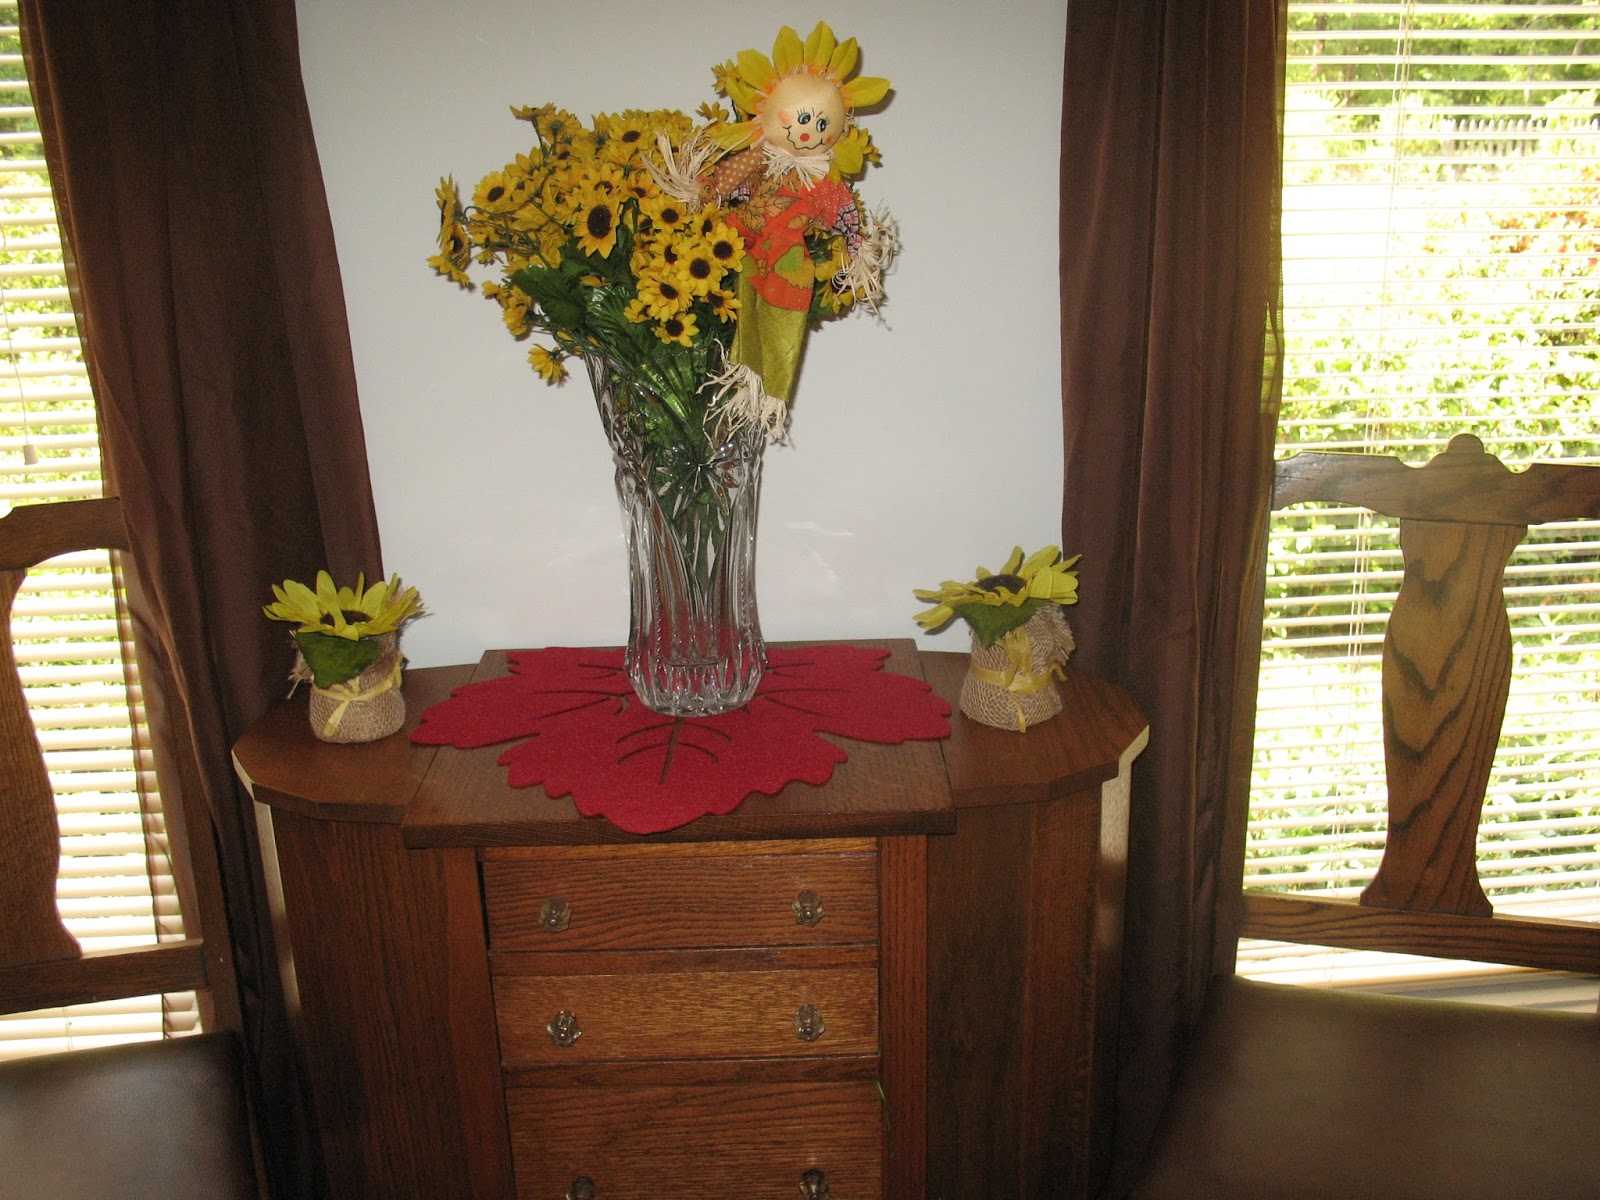 For The Month Of September I Have My Sunflowers And A Few Fall Decorations  Out. They Will Remain Out Through September. Below Are Some Of The Pictures  I ...